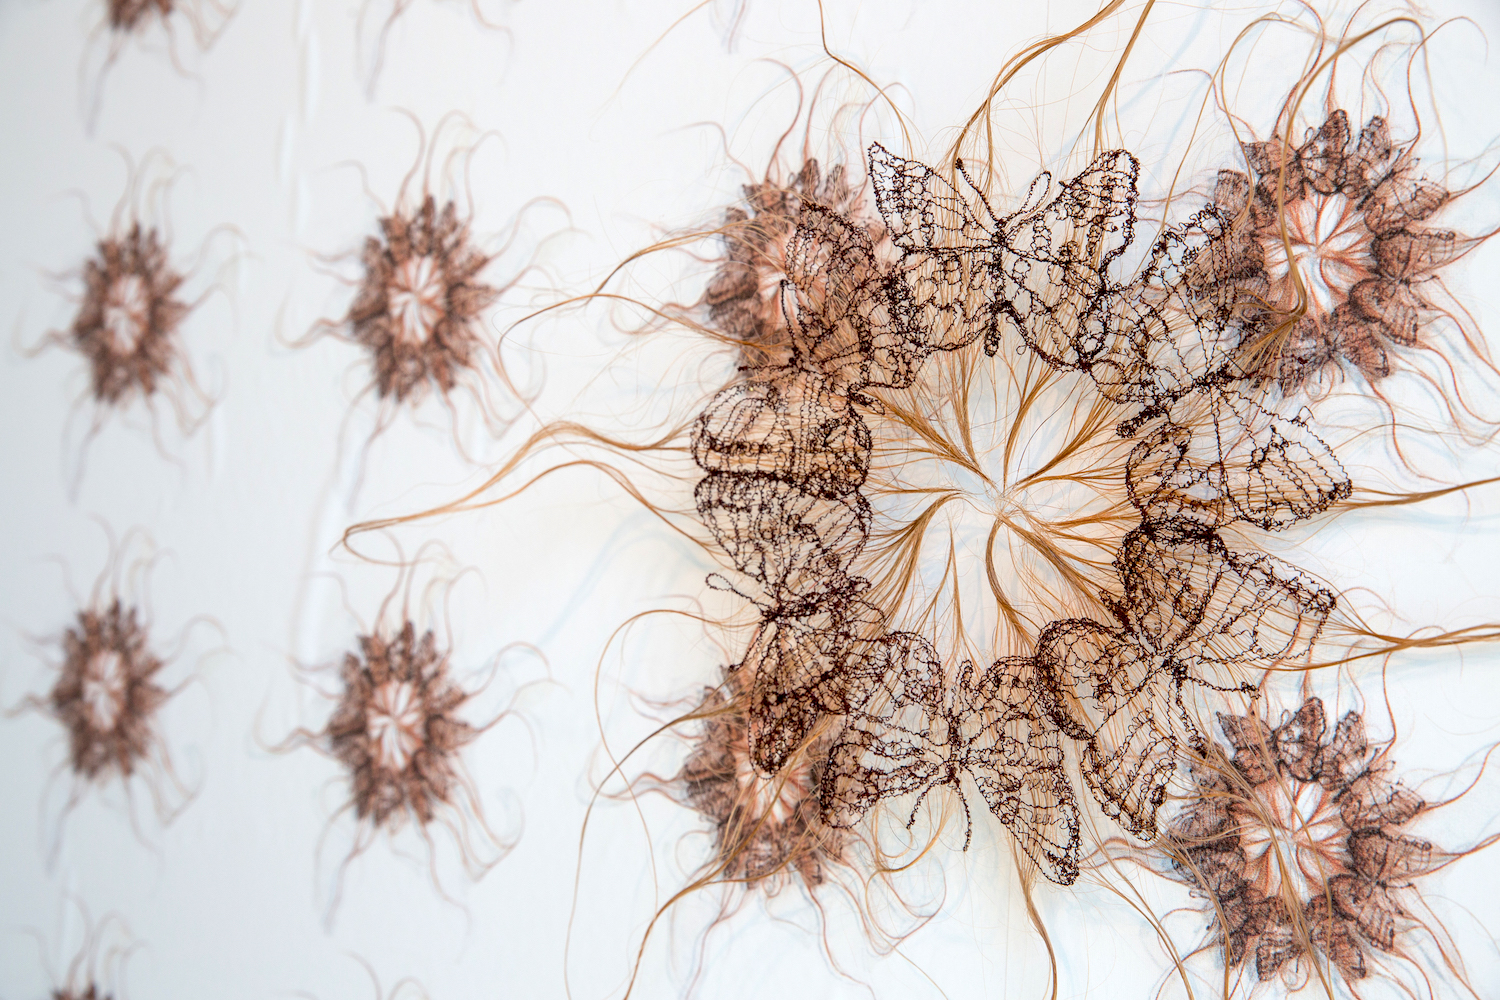 Extinction as a Parlor Game, detail view showing Patriarchal Orifice #2: Boloria Frigga (Frigga Fritillary) , Thread stitched on human hair, insect pin, styling products, 18 x 16 x 1 inches, installed at the Lord Hall Galleries, University of Maine, 2016